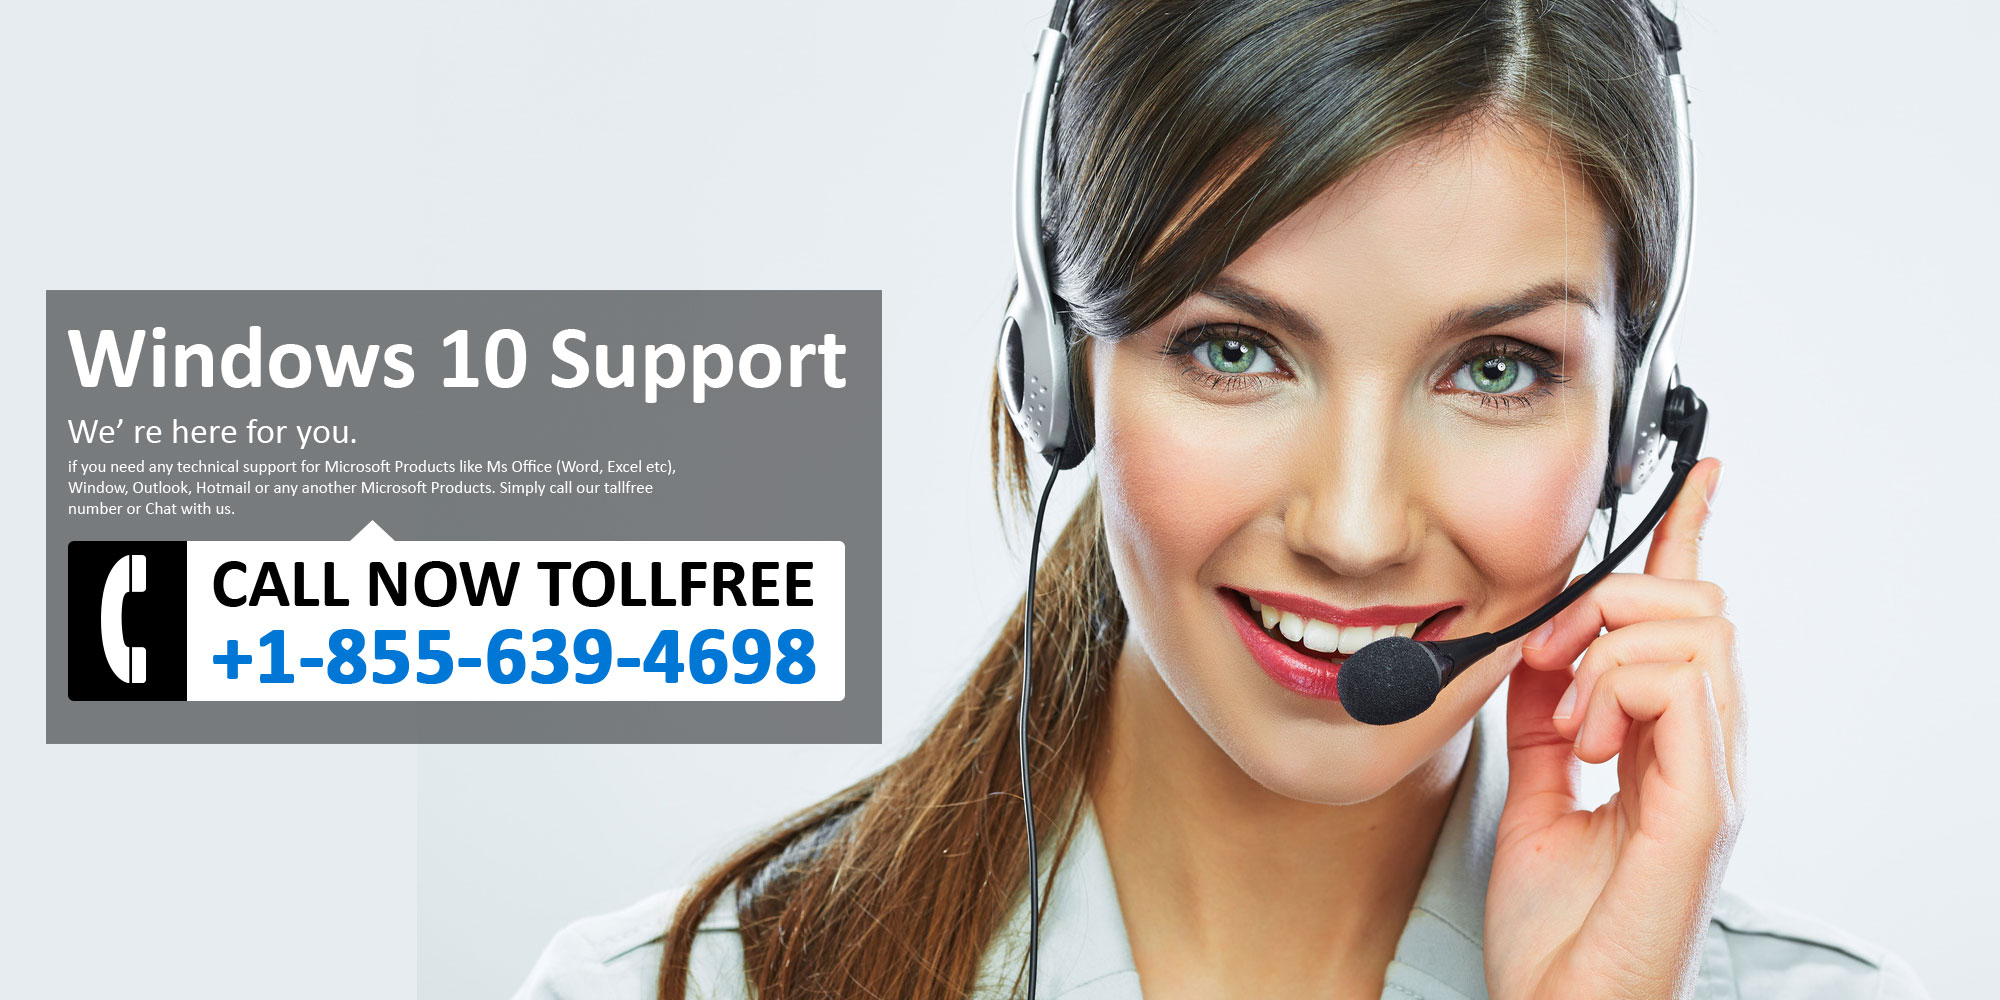 Helpine Number: +1-855-639-4698 Windows Tech Support Phone